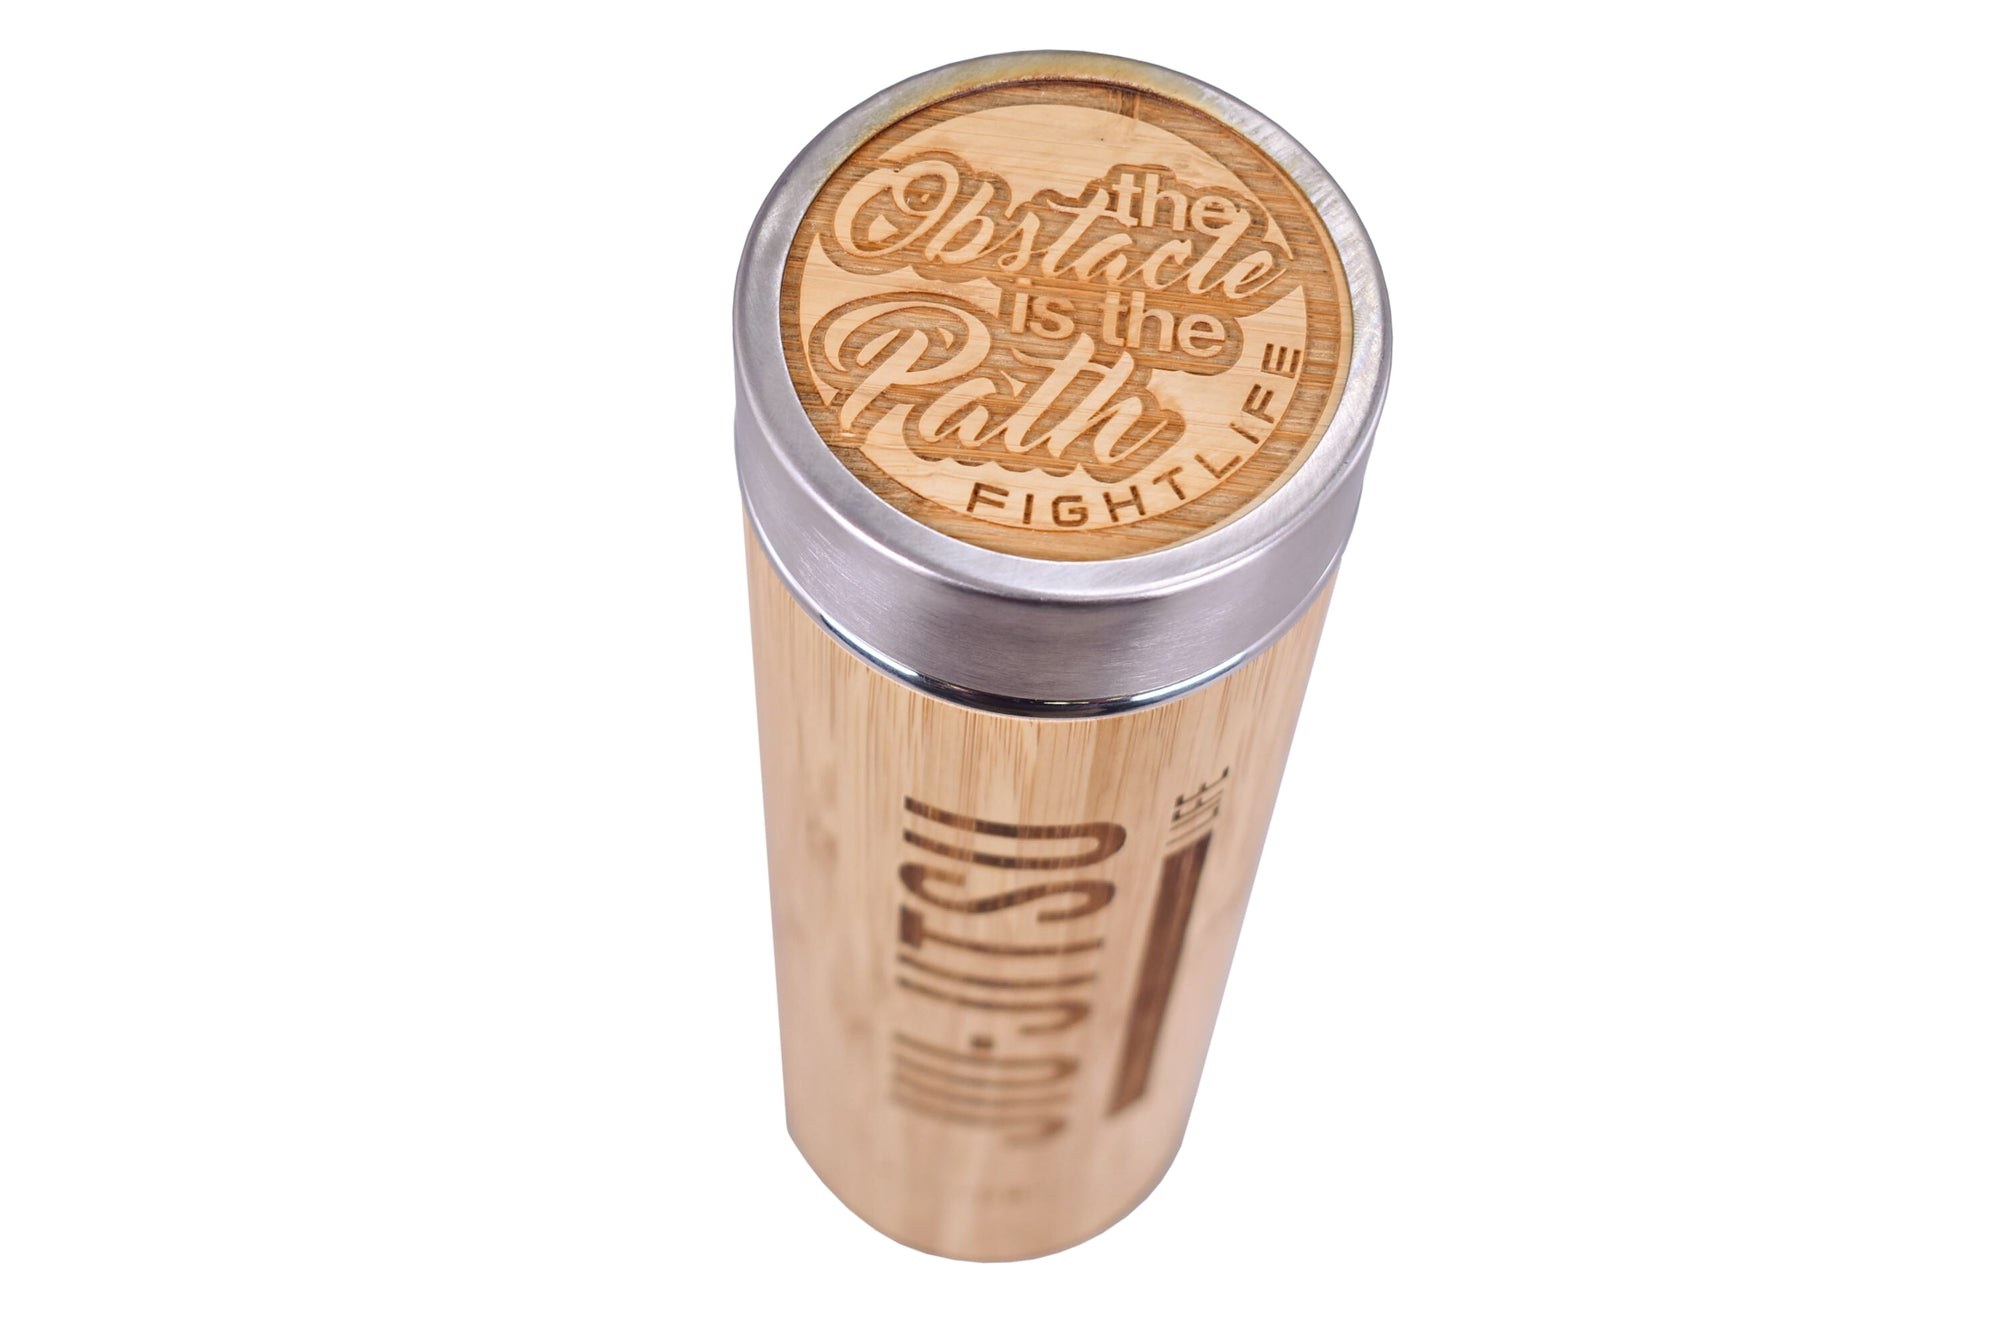 Limited Edition BP CK Collab Jiu Jitsu Life Bamboo Water Bottle - The Path Edition